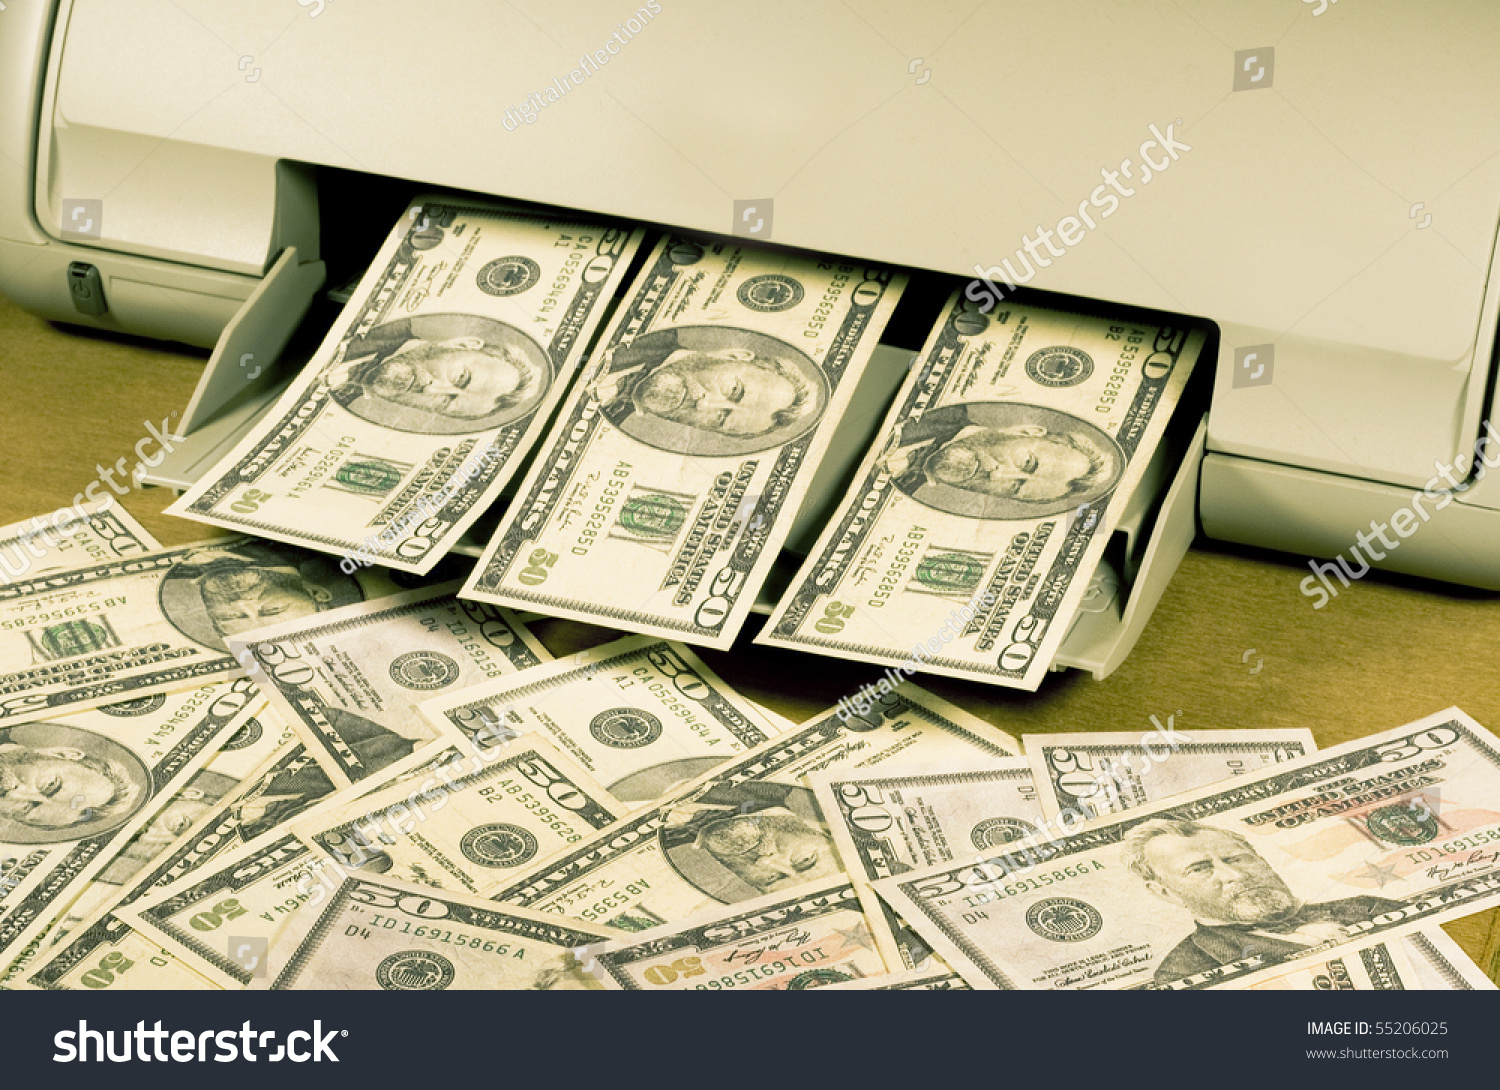 Paper for printing fake money